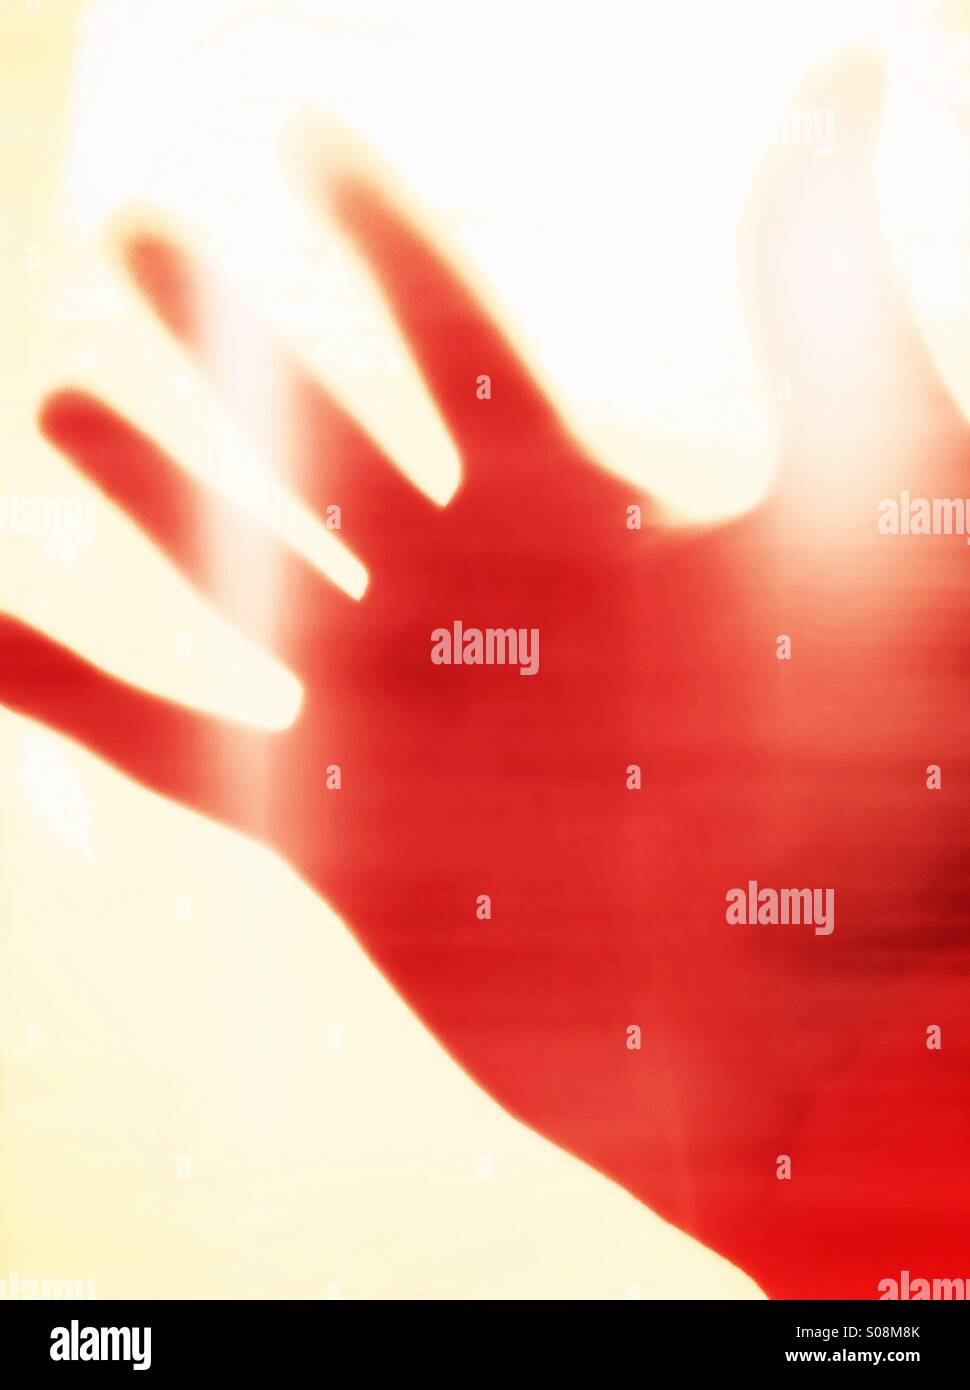 Hand, abstract - Stock Image